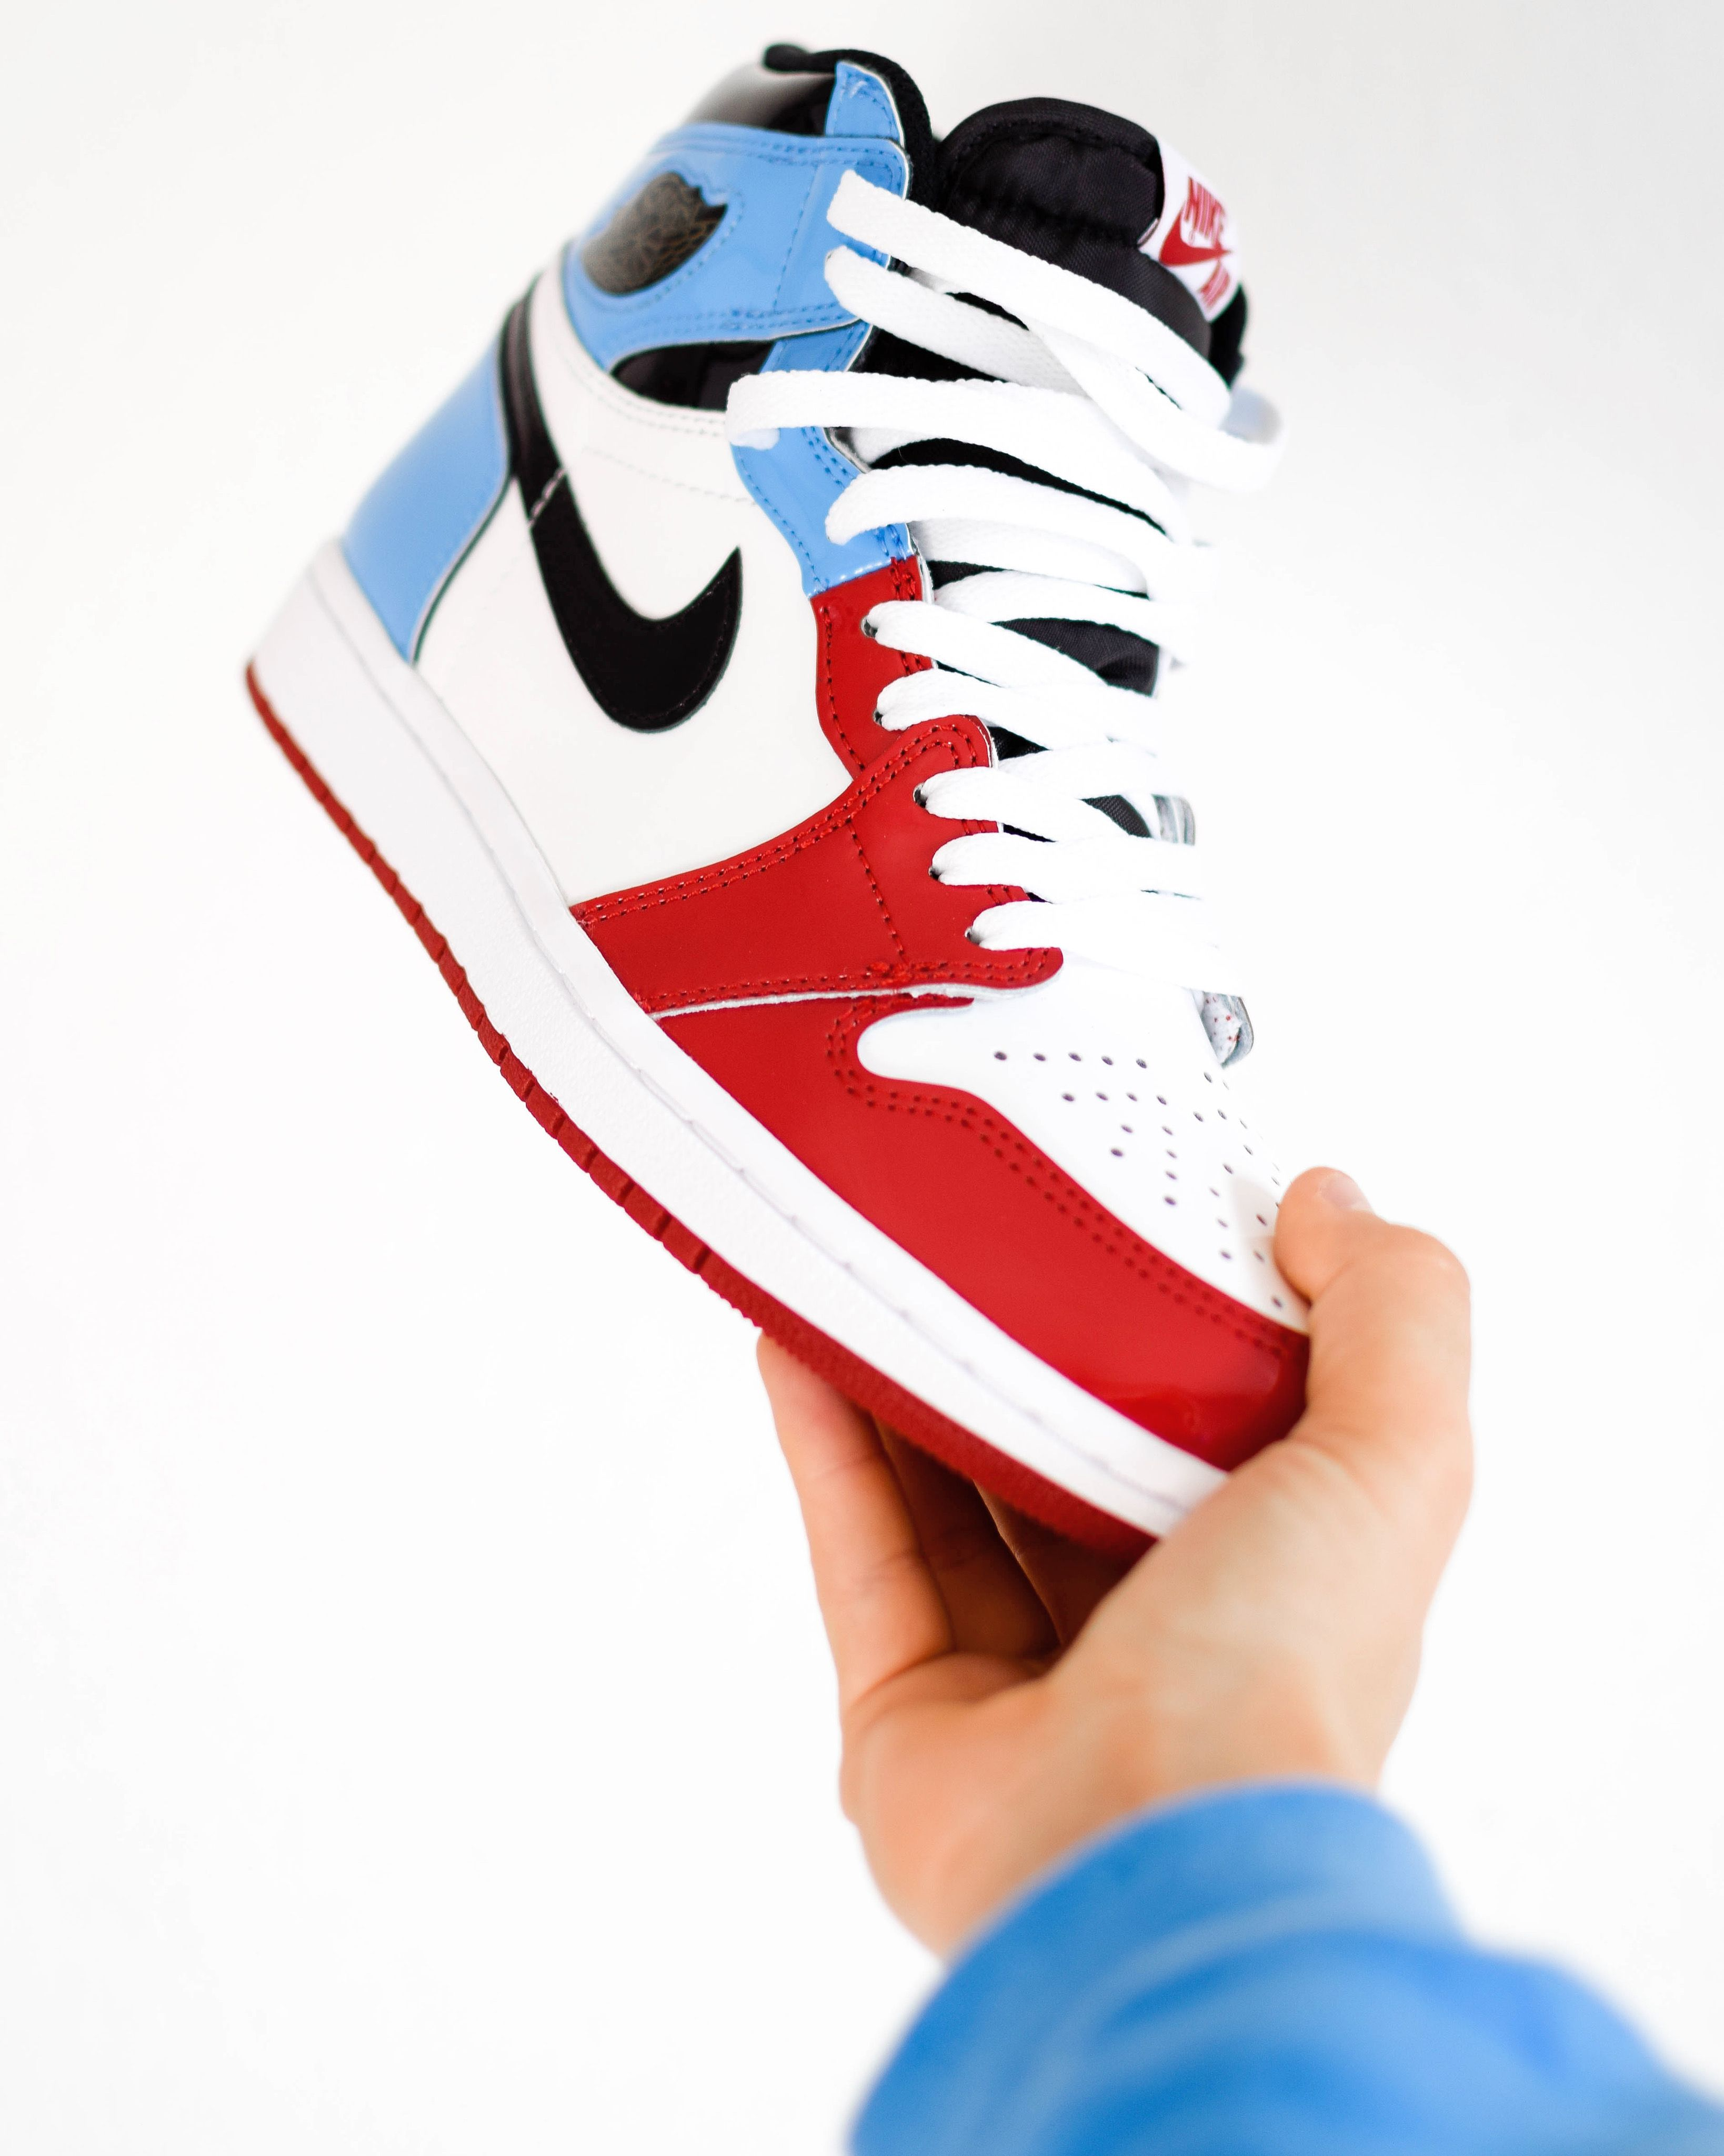 Jordan 1 Fearless Wallpaper For Iphone Sneakers Sneaker Tag Jordan 1